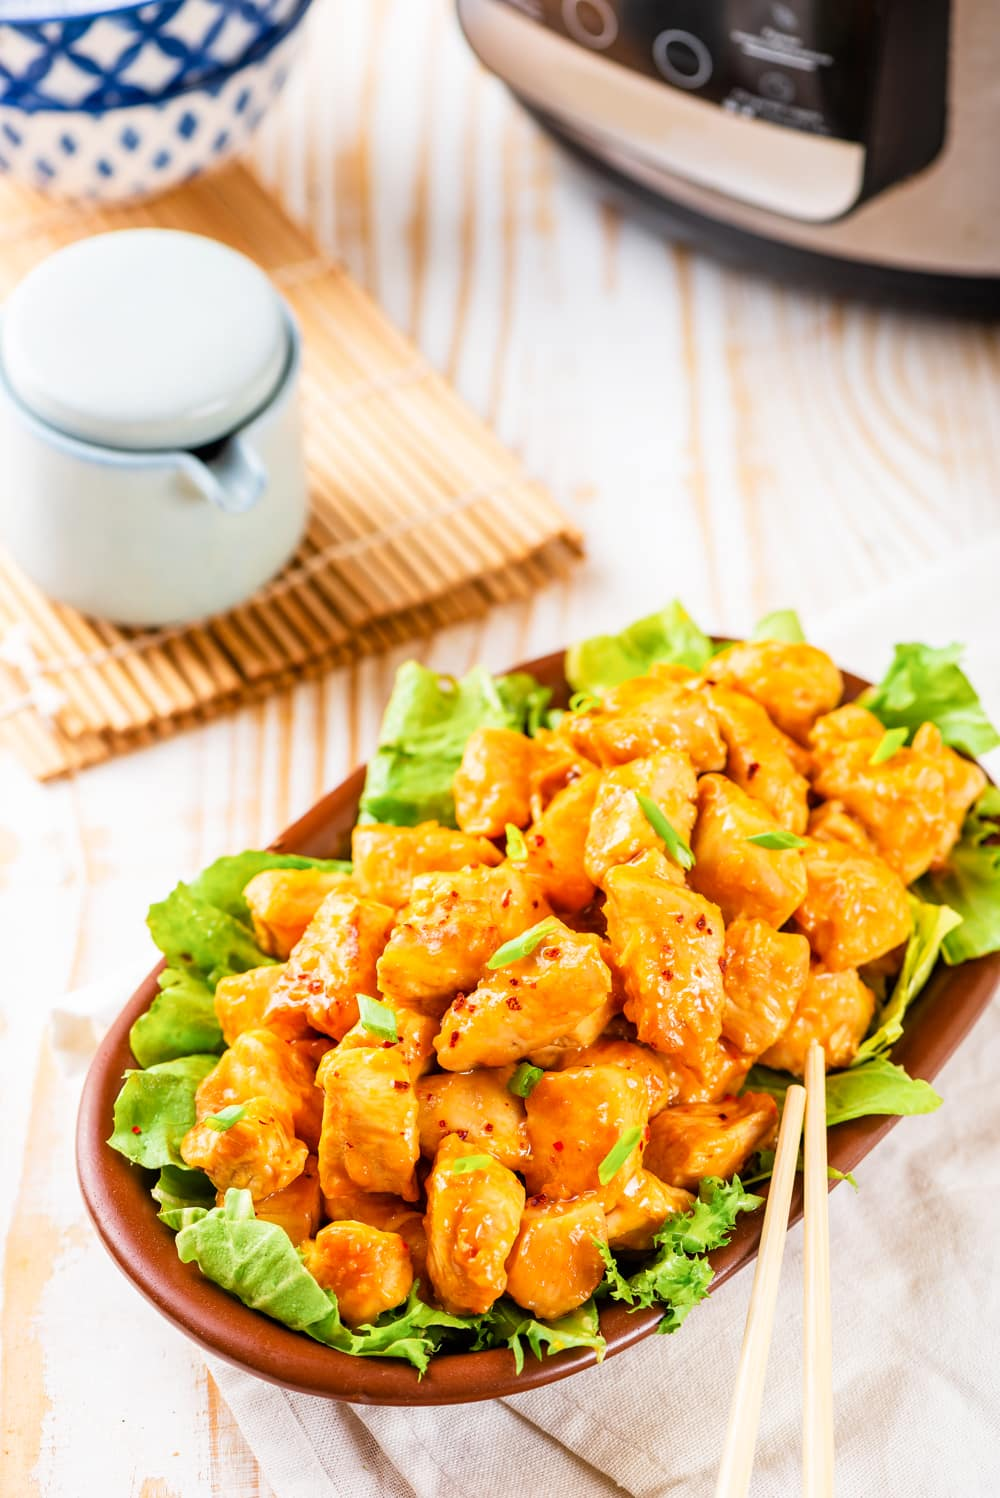 A brown bowl filled with lettuce and topped with orange chicken.